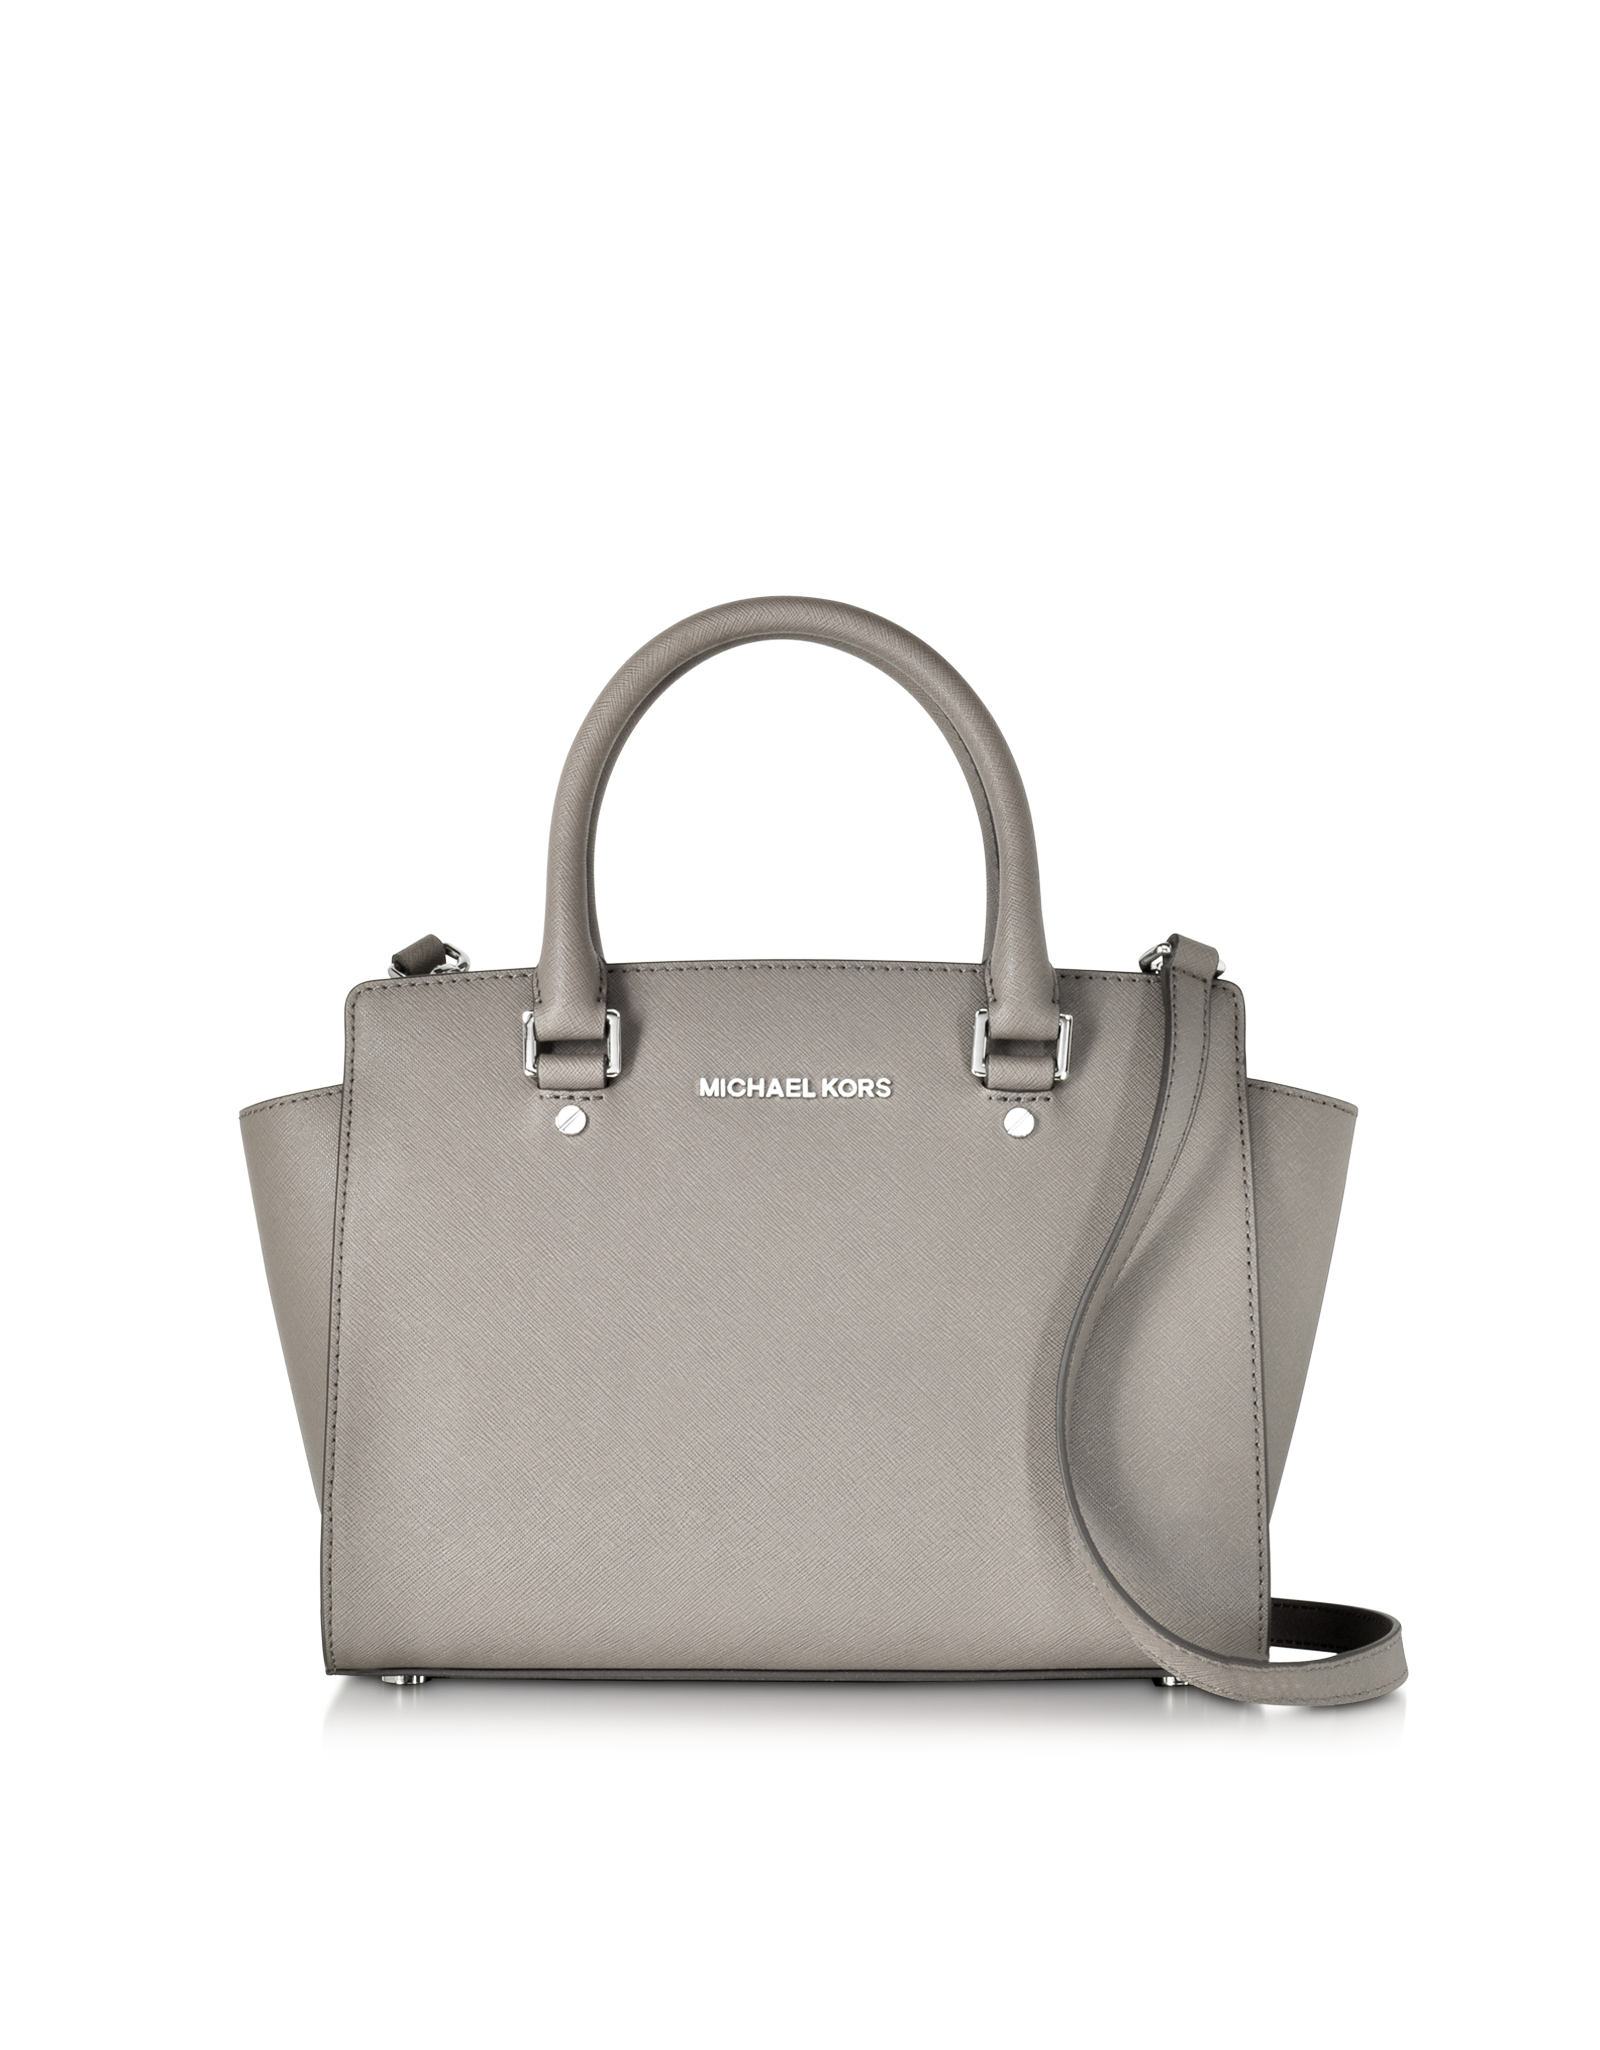 michael kors pearl gray saffiano leather selma medium t zip satchel in white lyst